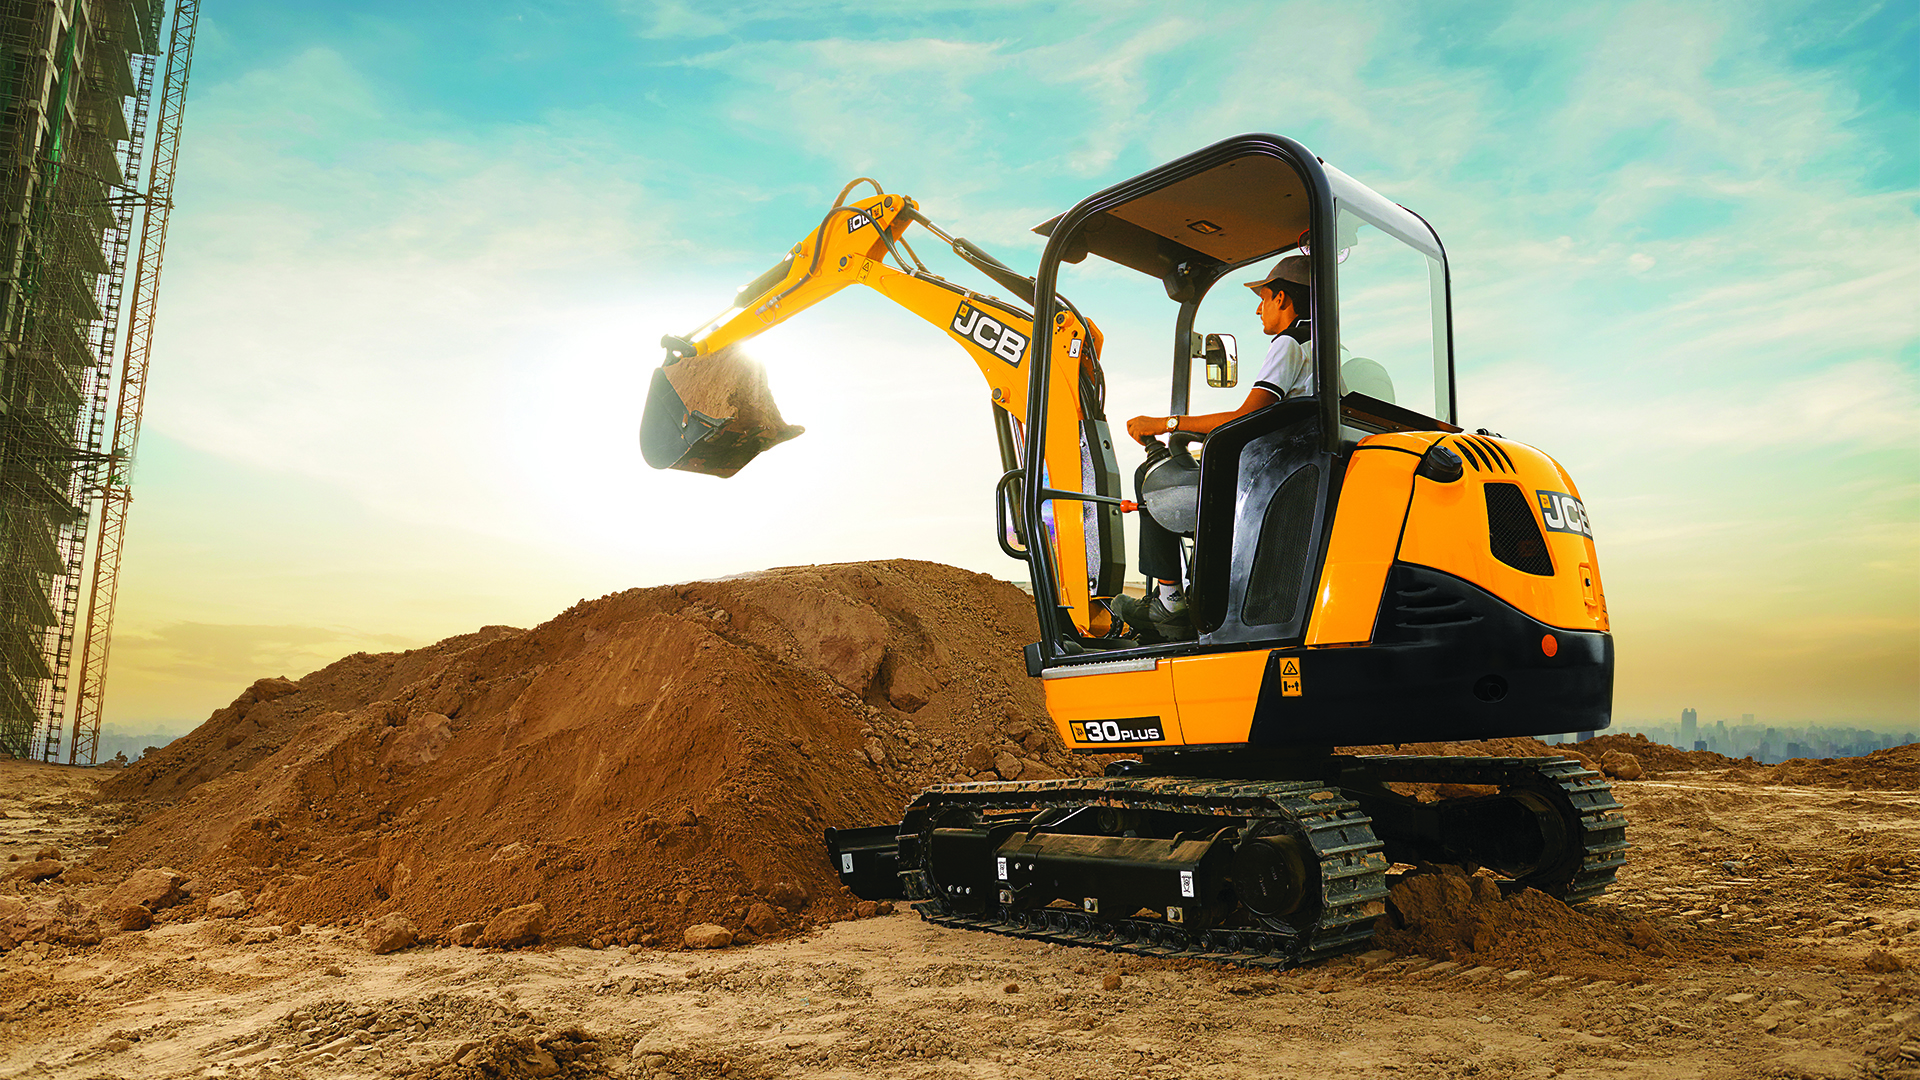 JCB Tracked Excavators Images